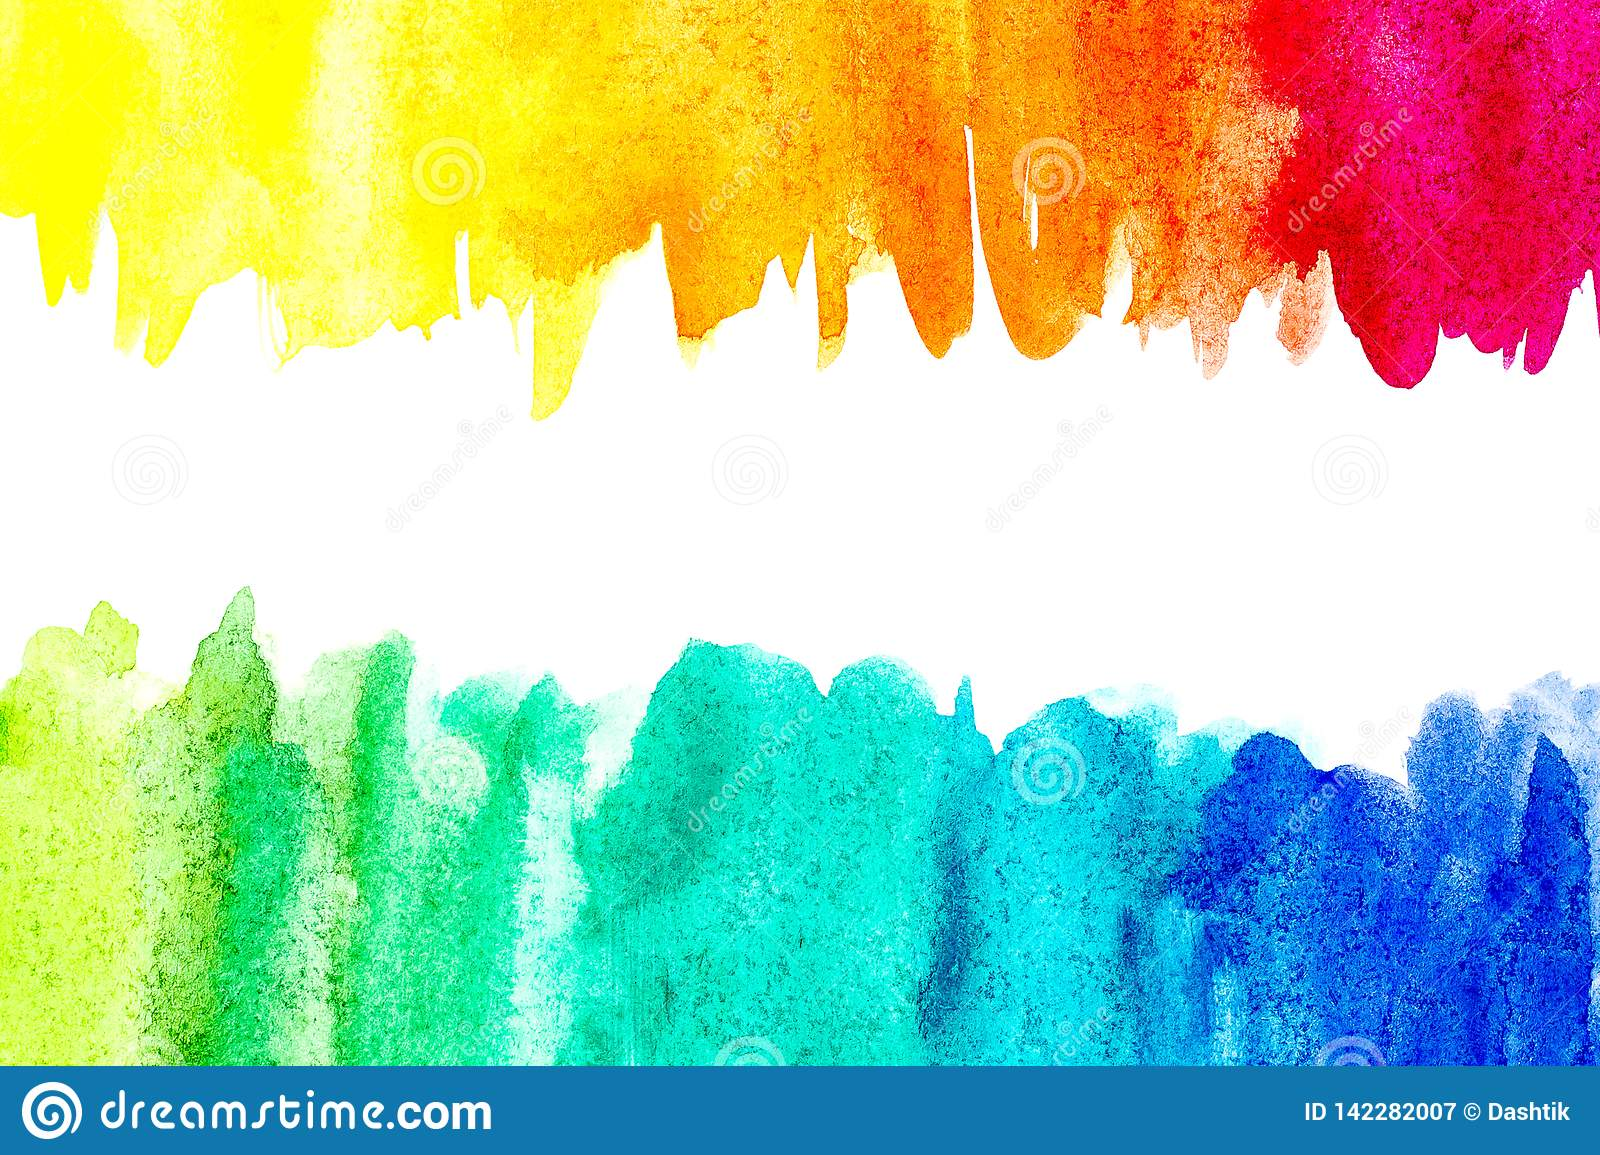 Border of abstract watercolor art hand paint on white background. Watercolor background